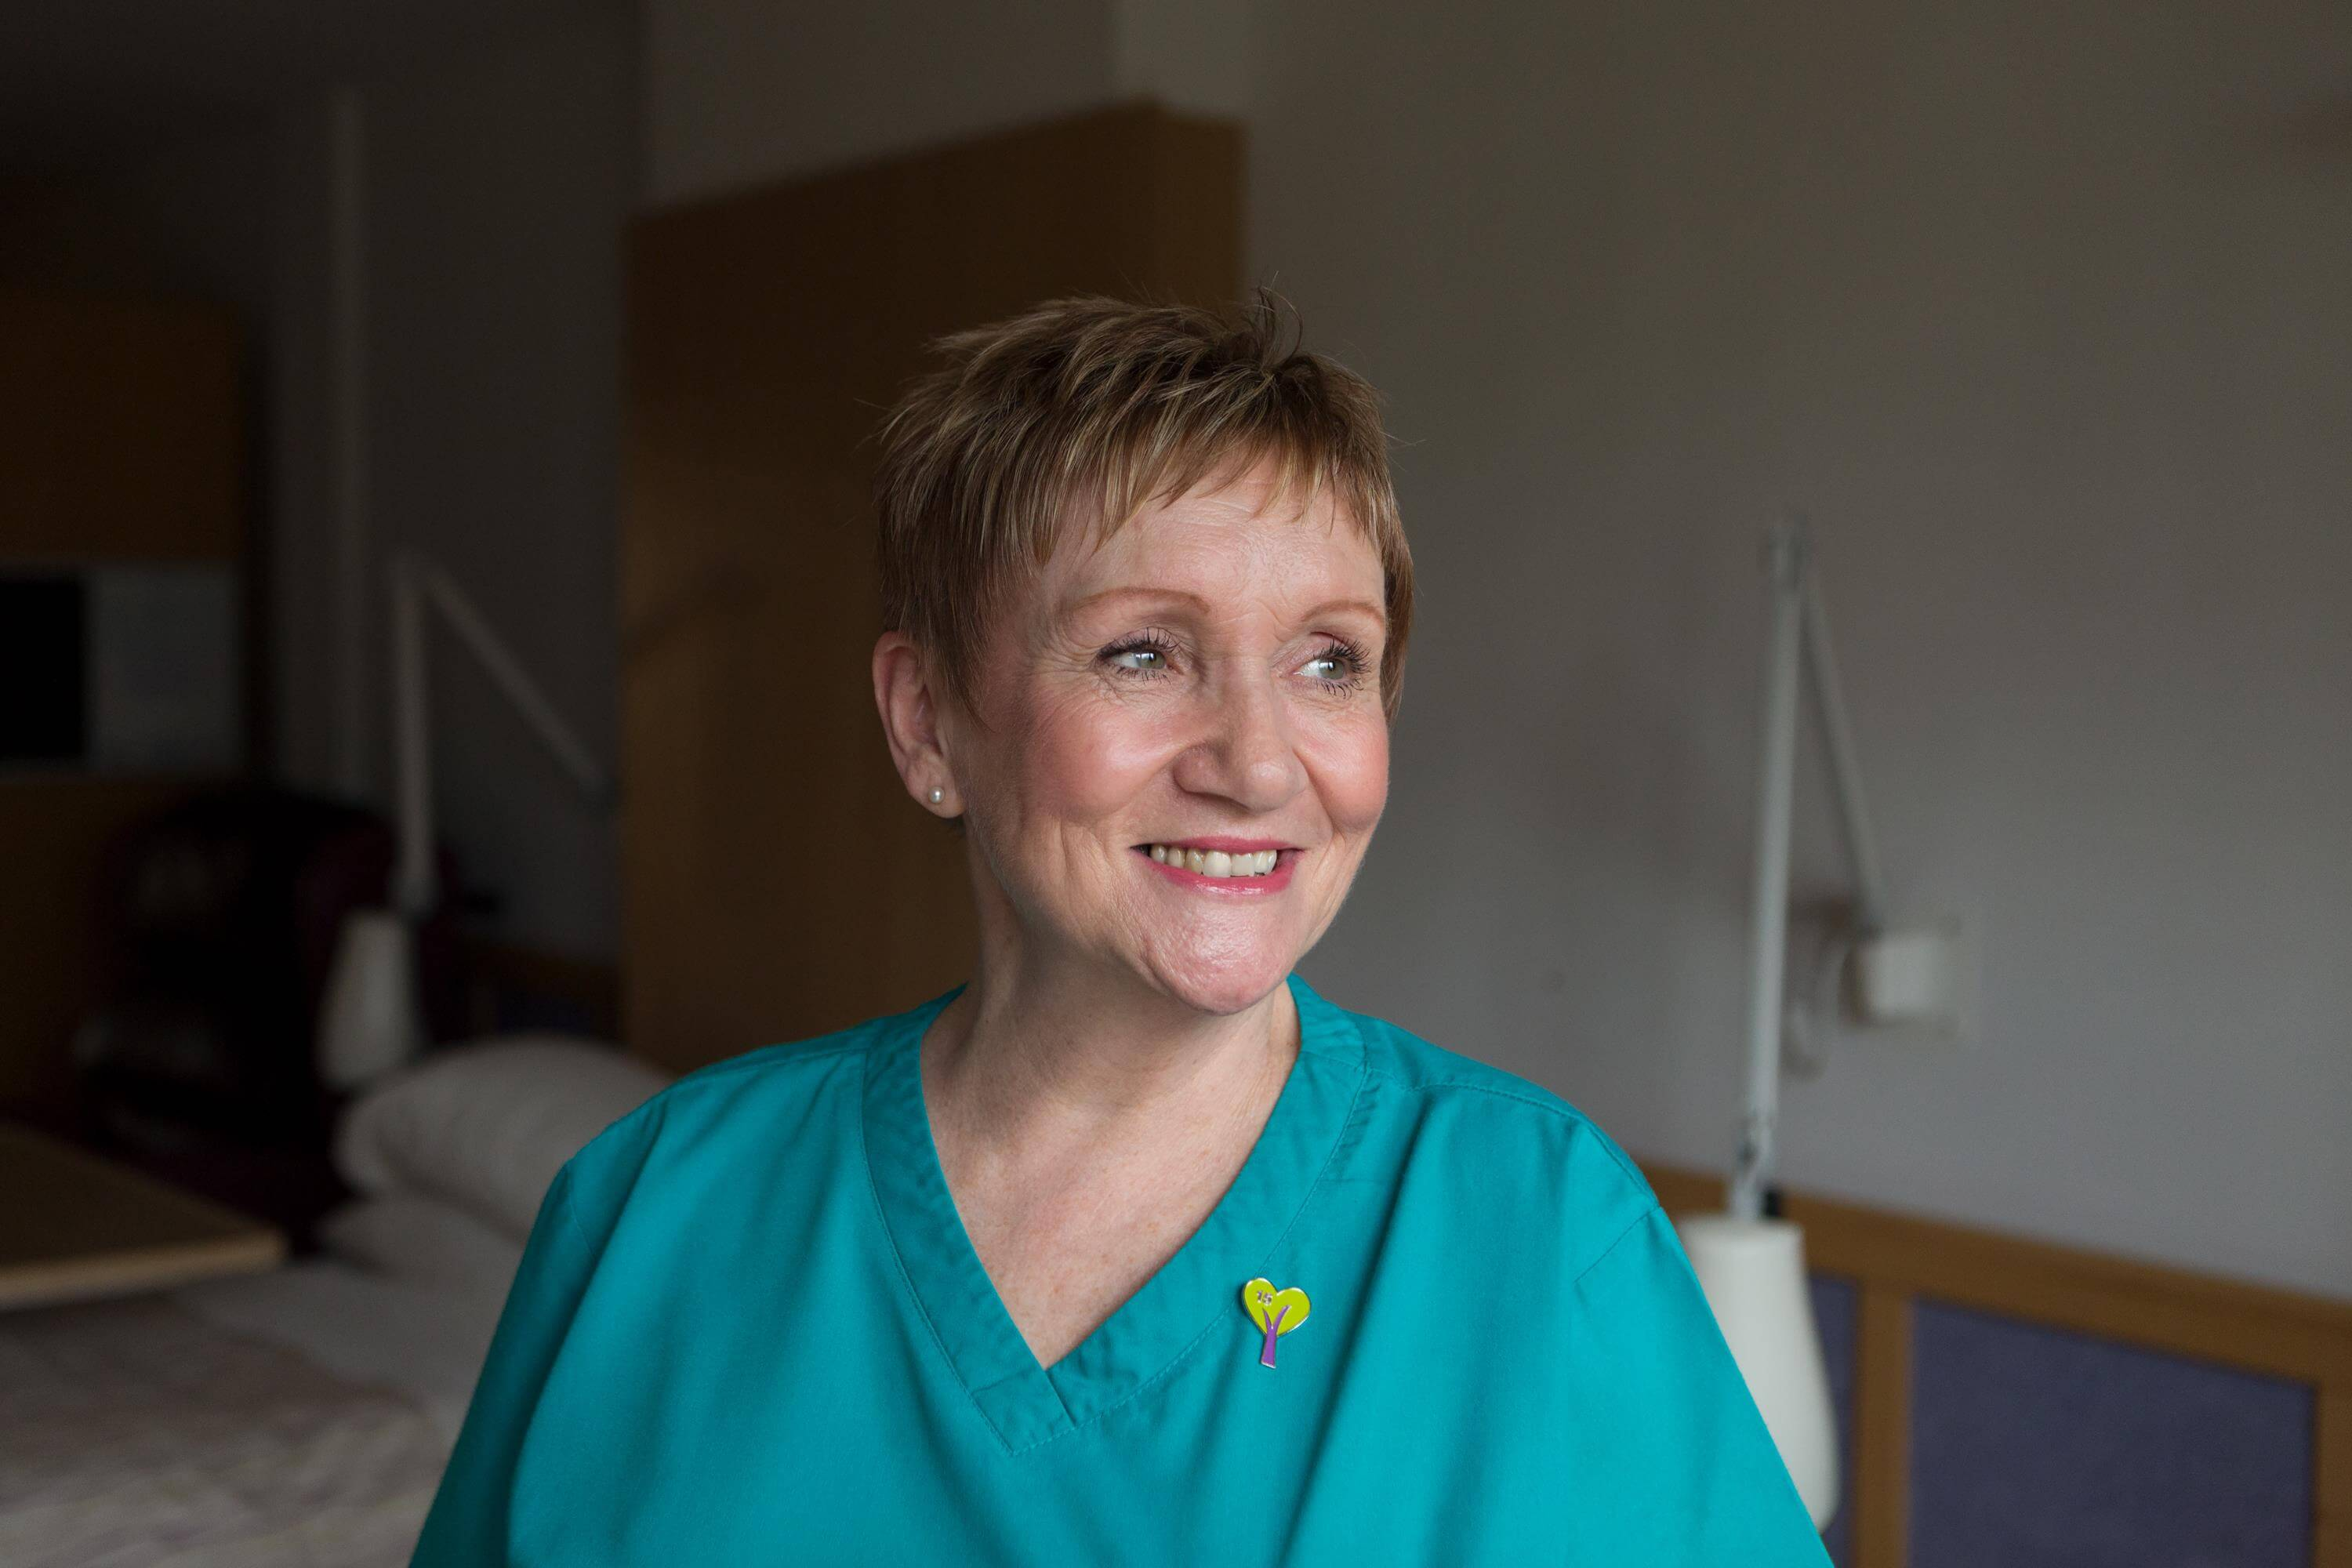 Smiling healthcare assistant in turquoise uniform